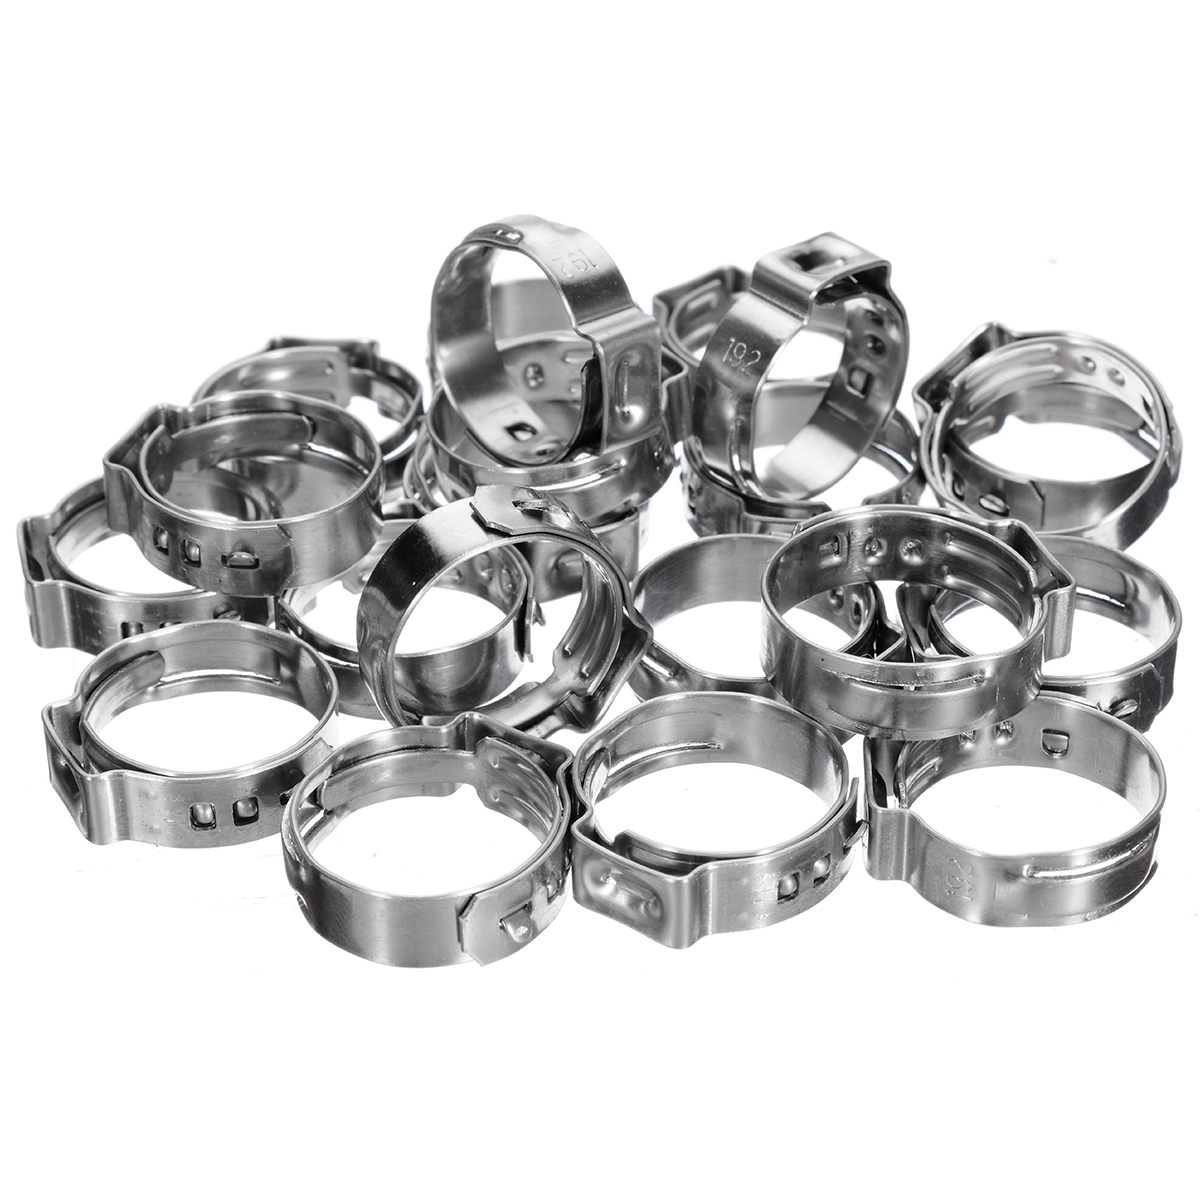 180pcs kit Stainless Steel Single Ear Hose Clamp Hose Clamp Assortment Kit Ear Stepless Cinch Rings Crimp Pinch Fit 5 8 21mm in Clamps from Home Improvement